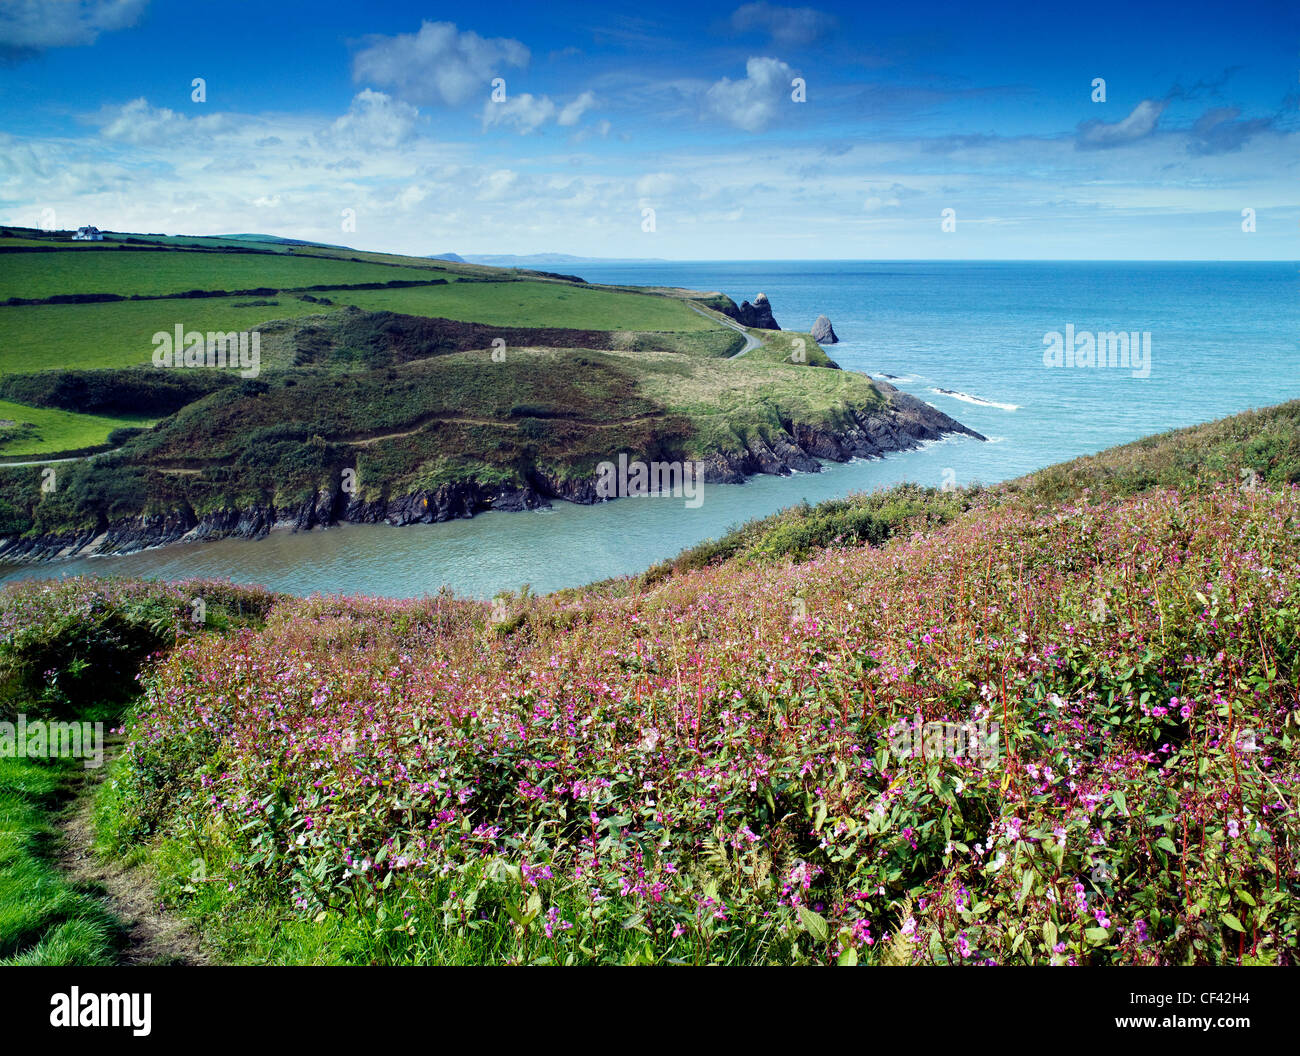 View out to the Irish Sea from the hills and cliffs surrounding Ceibwr Bay. - Stock Image